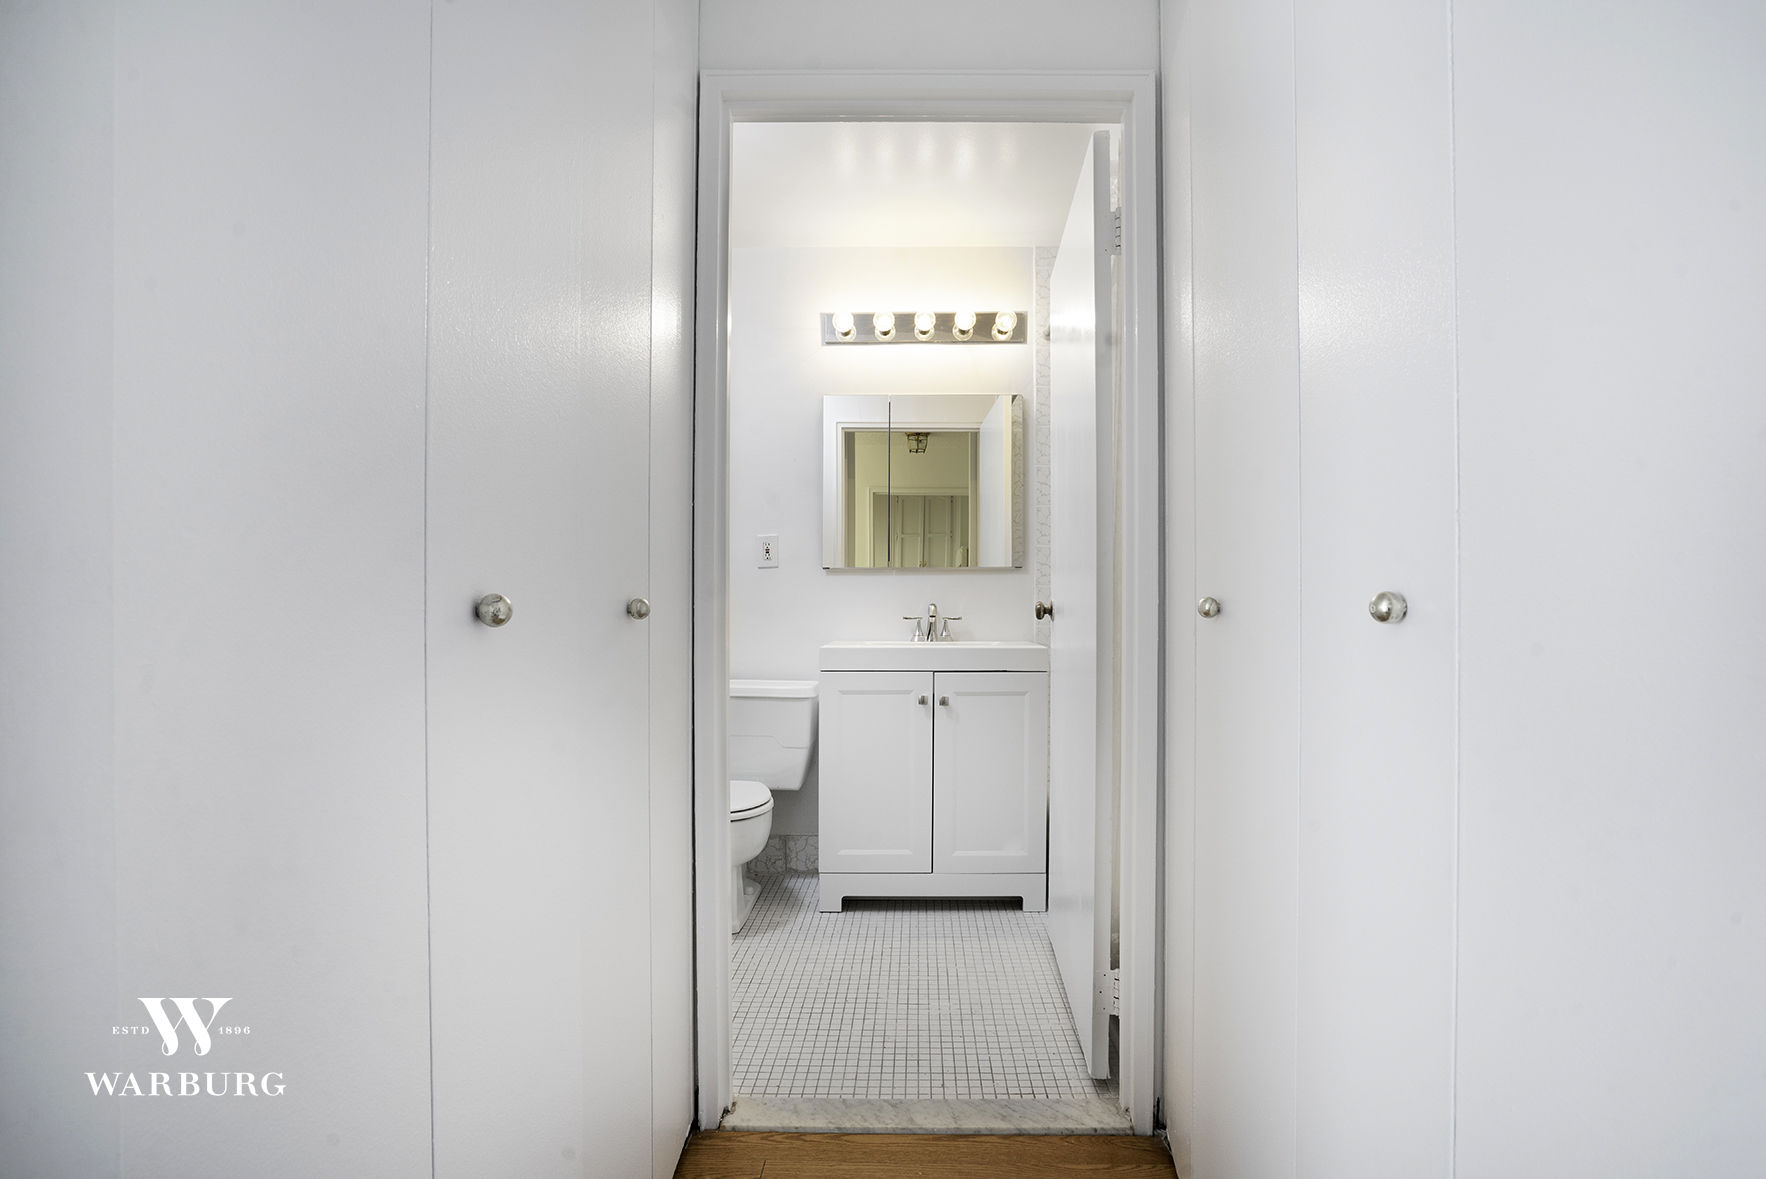 301 East 79th Street, Apt 29 K Photo 4 - WR-3009366